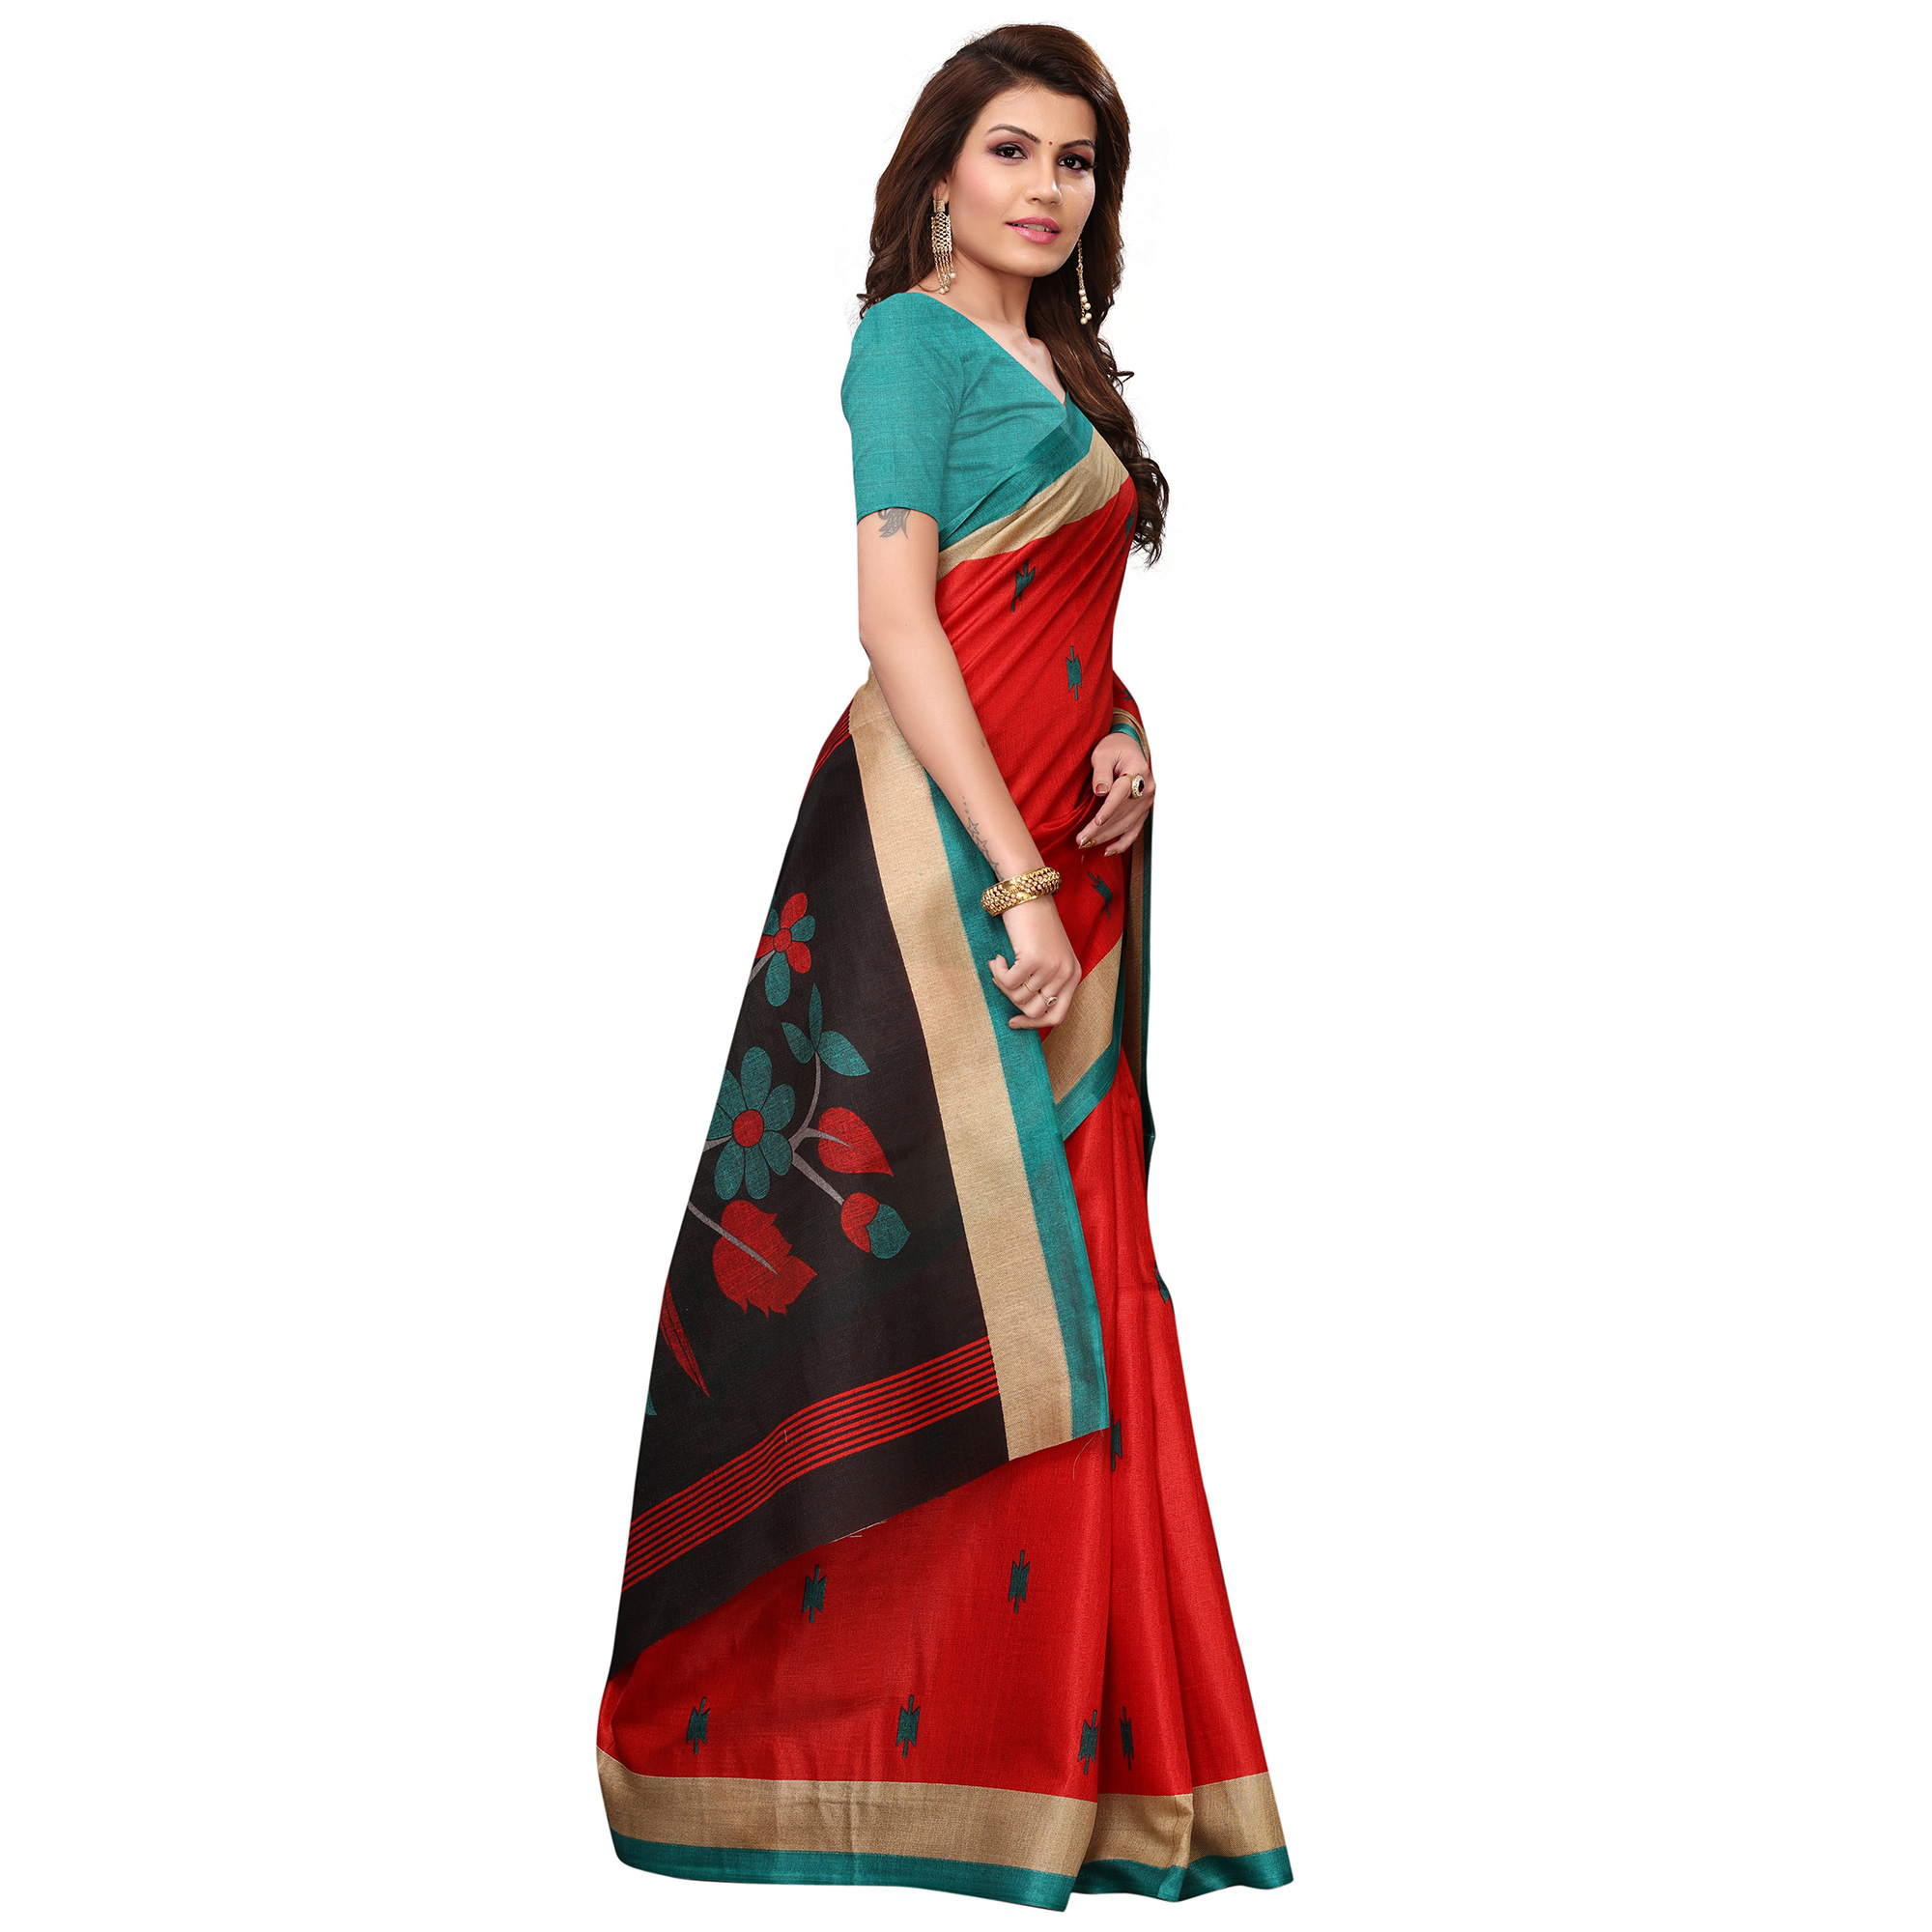 Lovely Red Colored Festive Wear Printed Khadi Saree